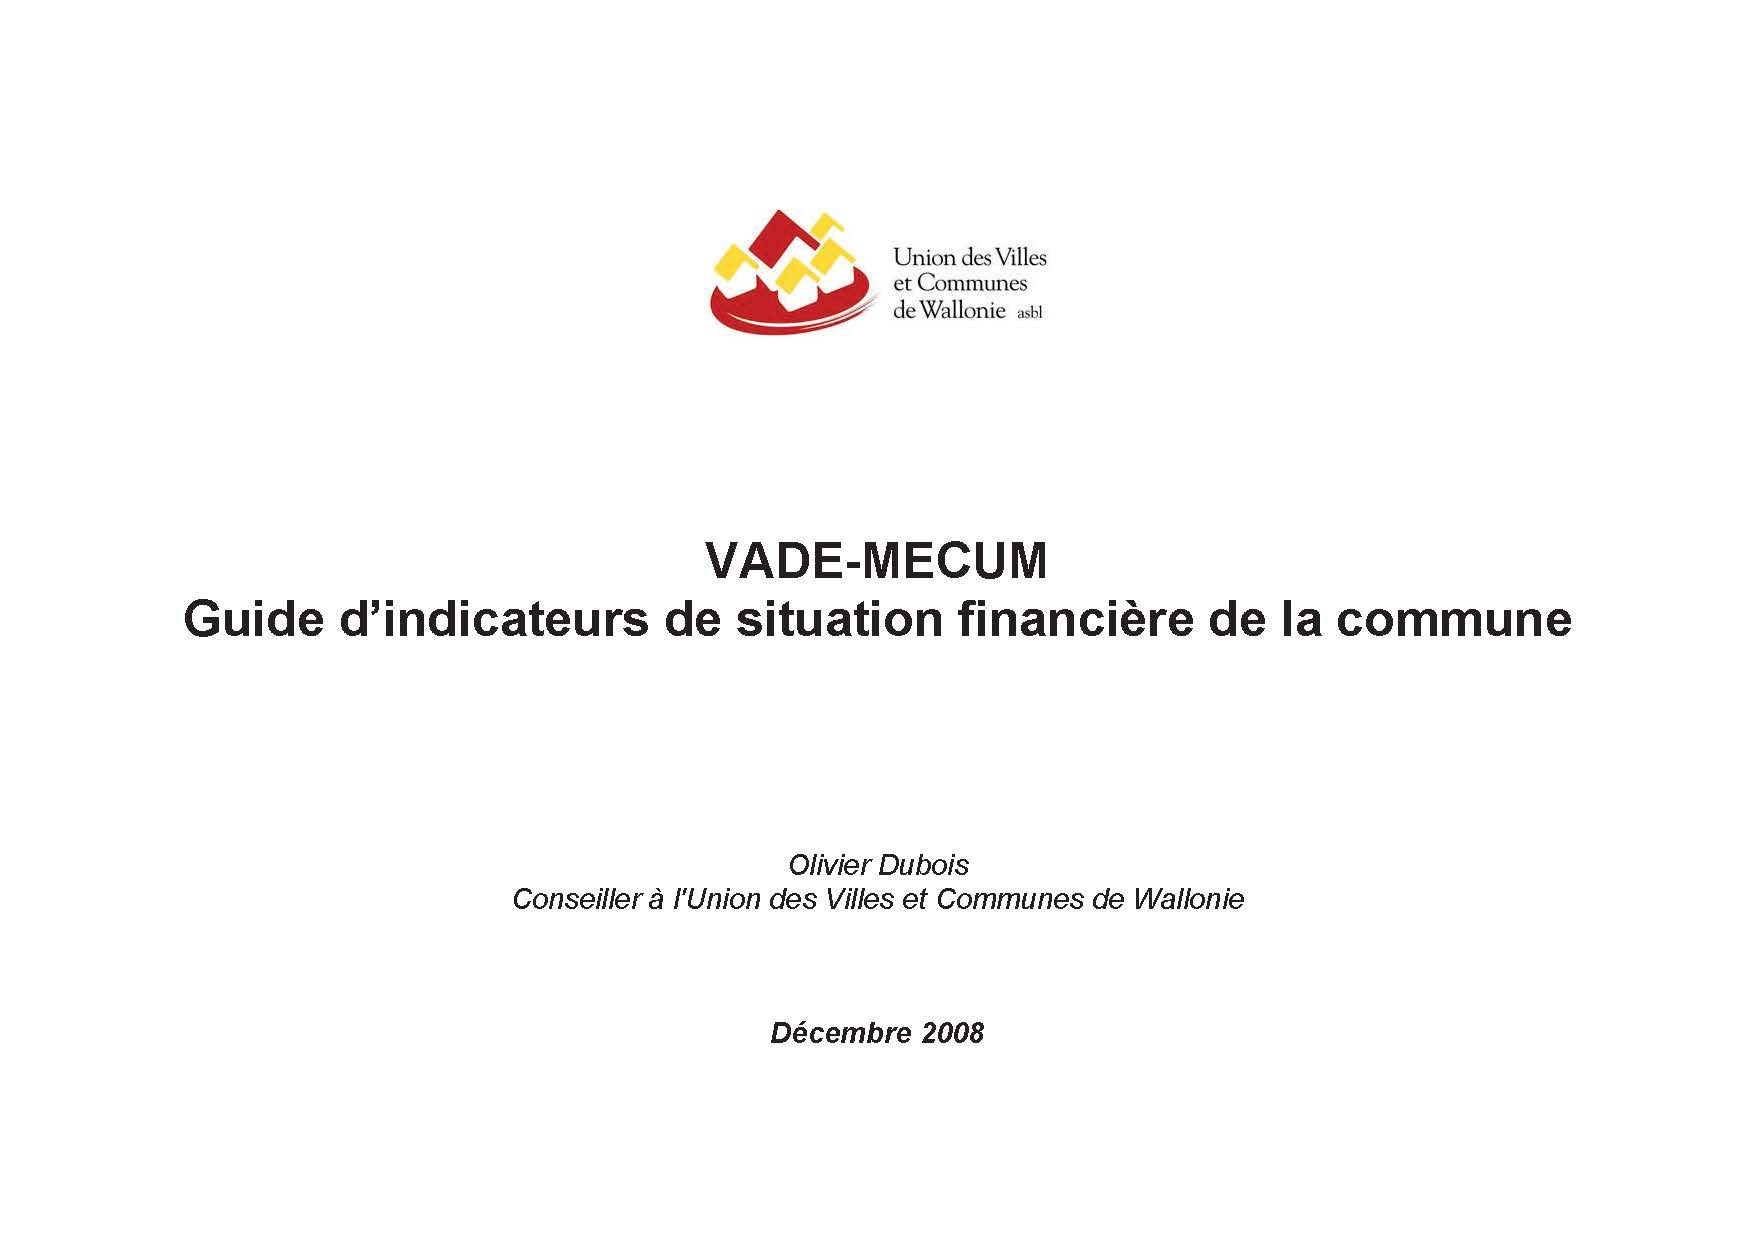 Guide d'indicateurs de situation financière de la commune